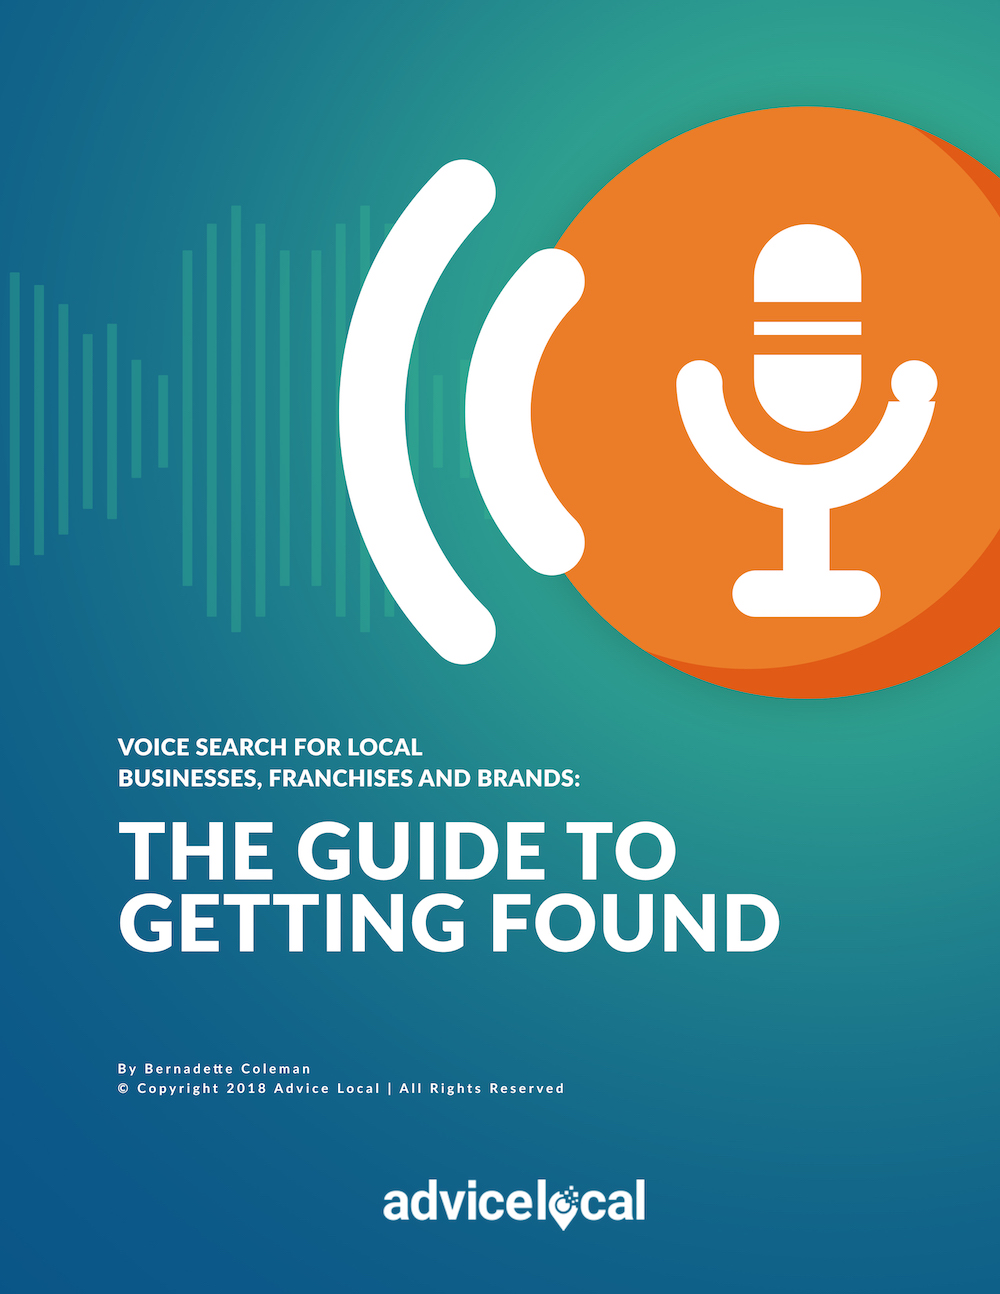 Voice Search Guide for Local Businesses